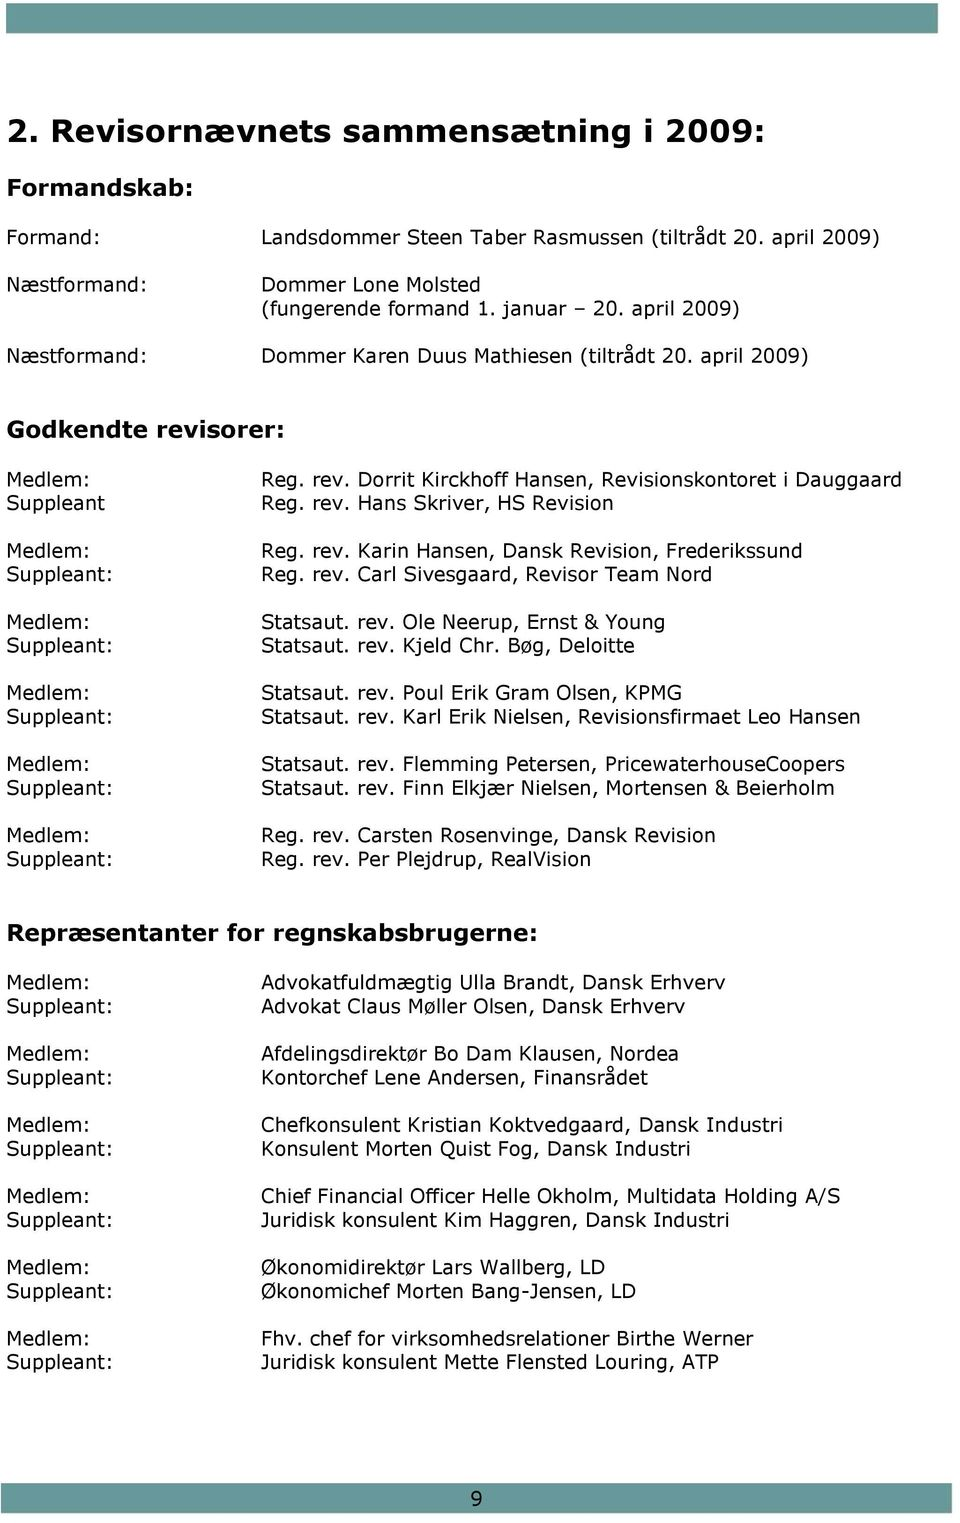 april 2009) Godkendte revisorer: Medlem: Suppleant Medlem: Suppleant: Medlem: Suppleant: Medlem: Suppleant: Medlem: Suppleant: Medlem: Suppleant: Reg. rev. Dorrit Kirckhoff Hansen, Revisionskontoret i Dauggaard Reg.